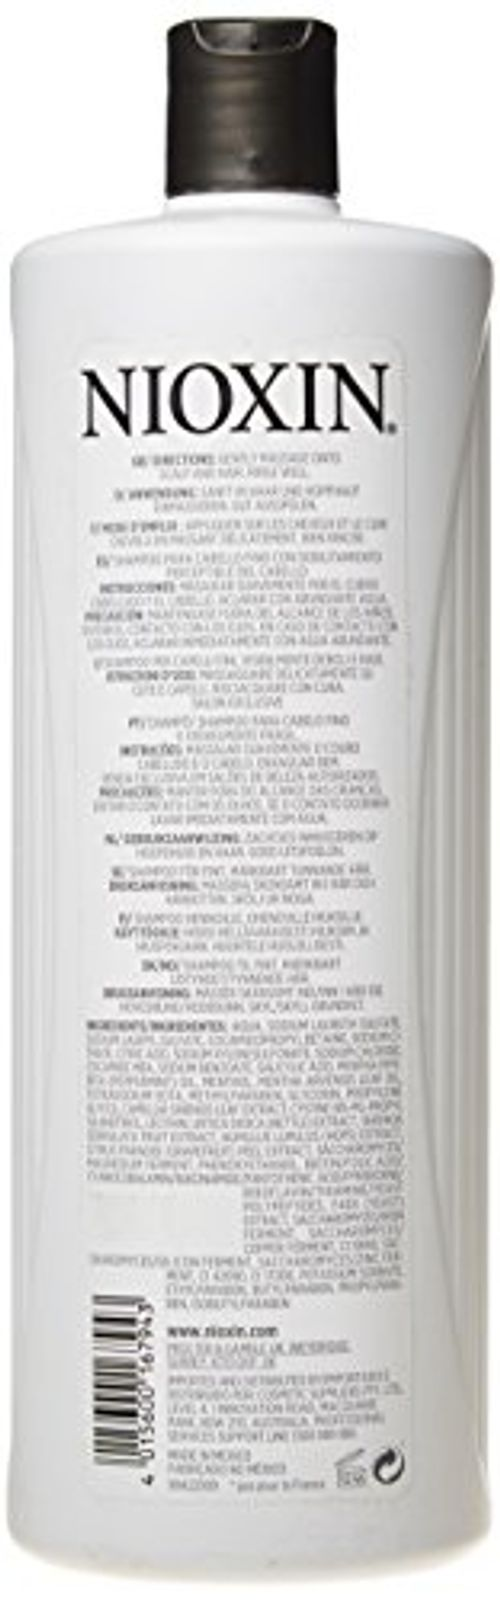 photo Wallpaper of Nioxin-Nioxin System 2 Cleanser Champú   1000 Ml-